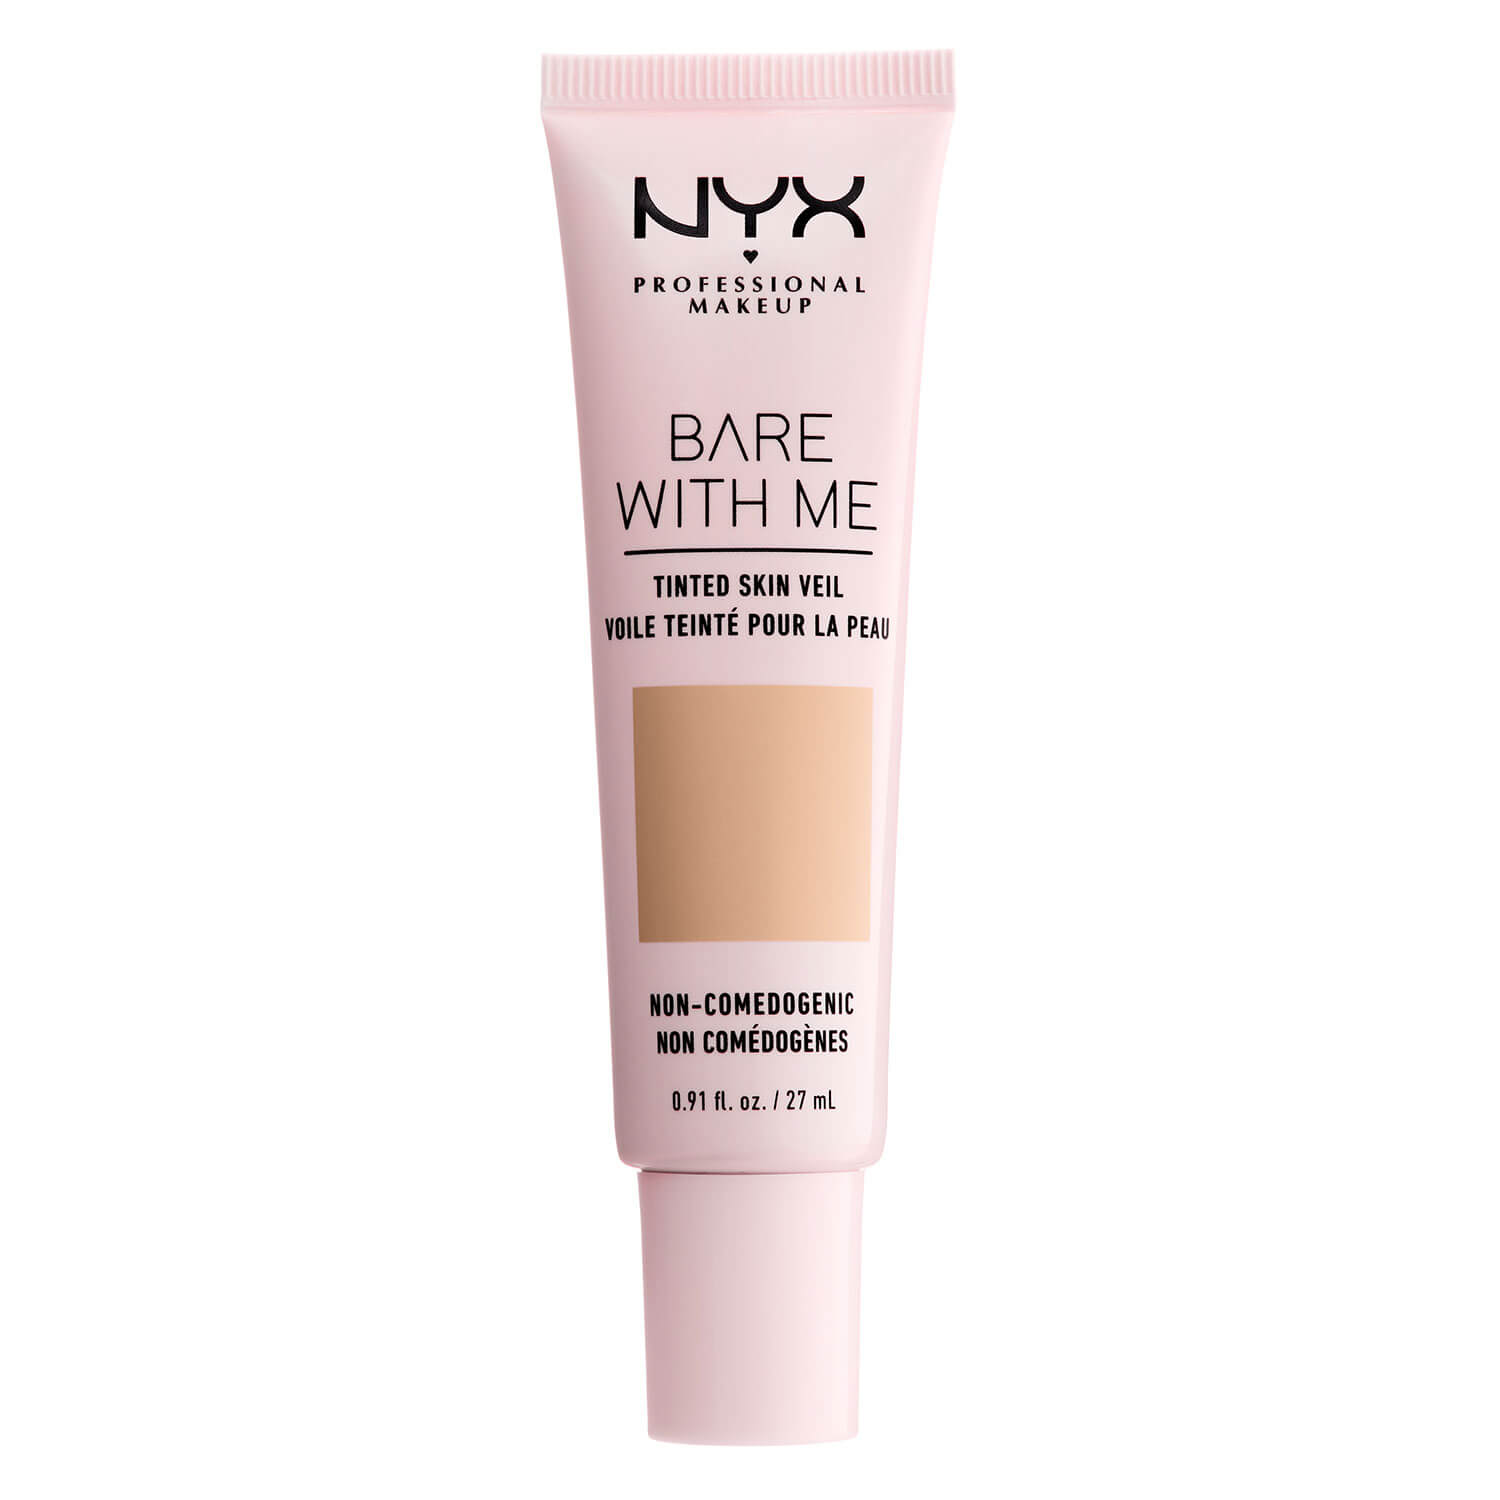 Bare with me - Tinted Skin Veil Natural Soft Beige